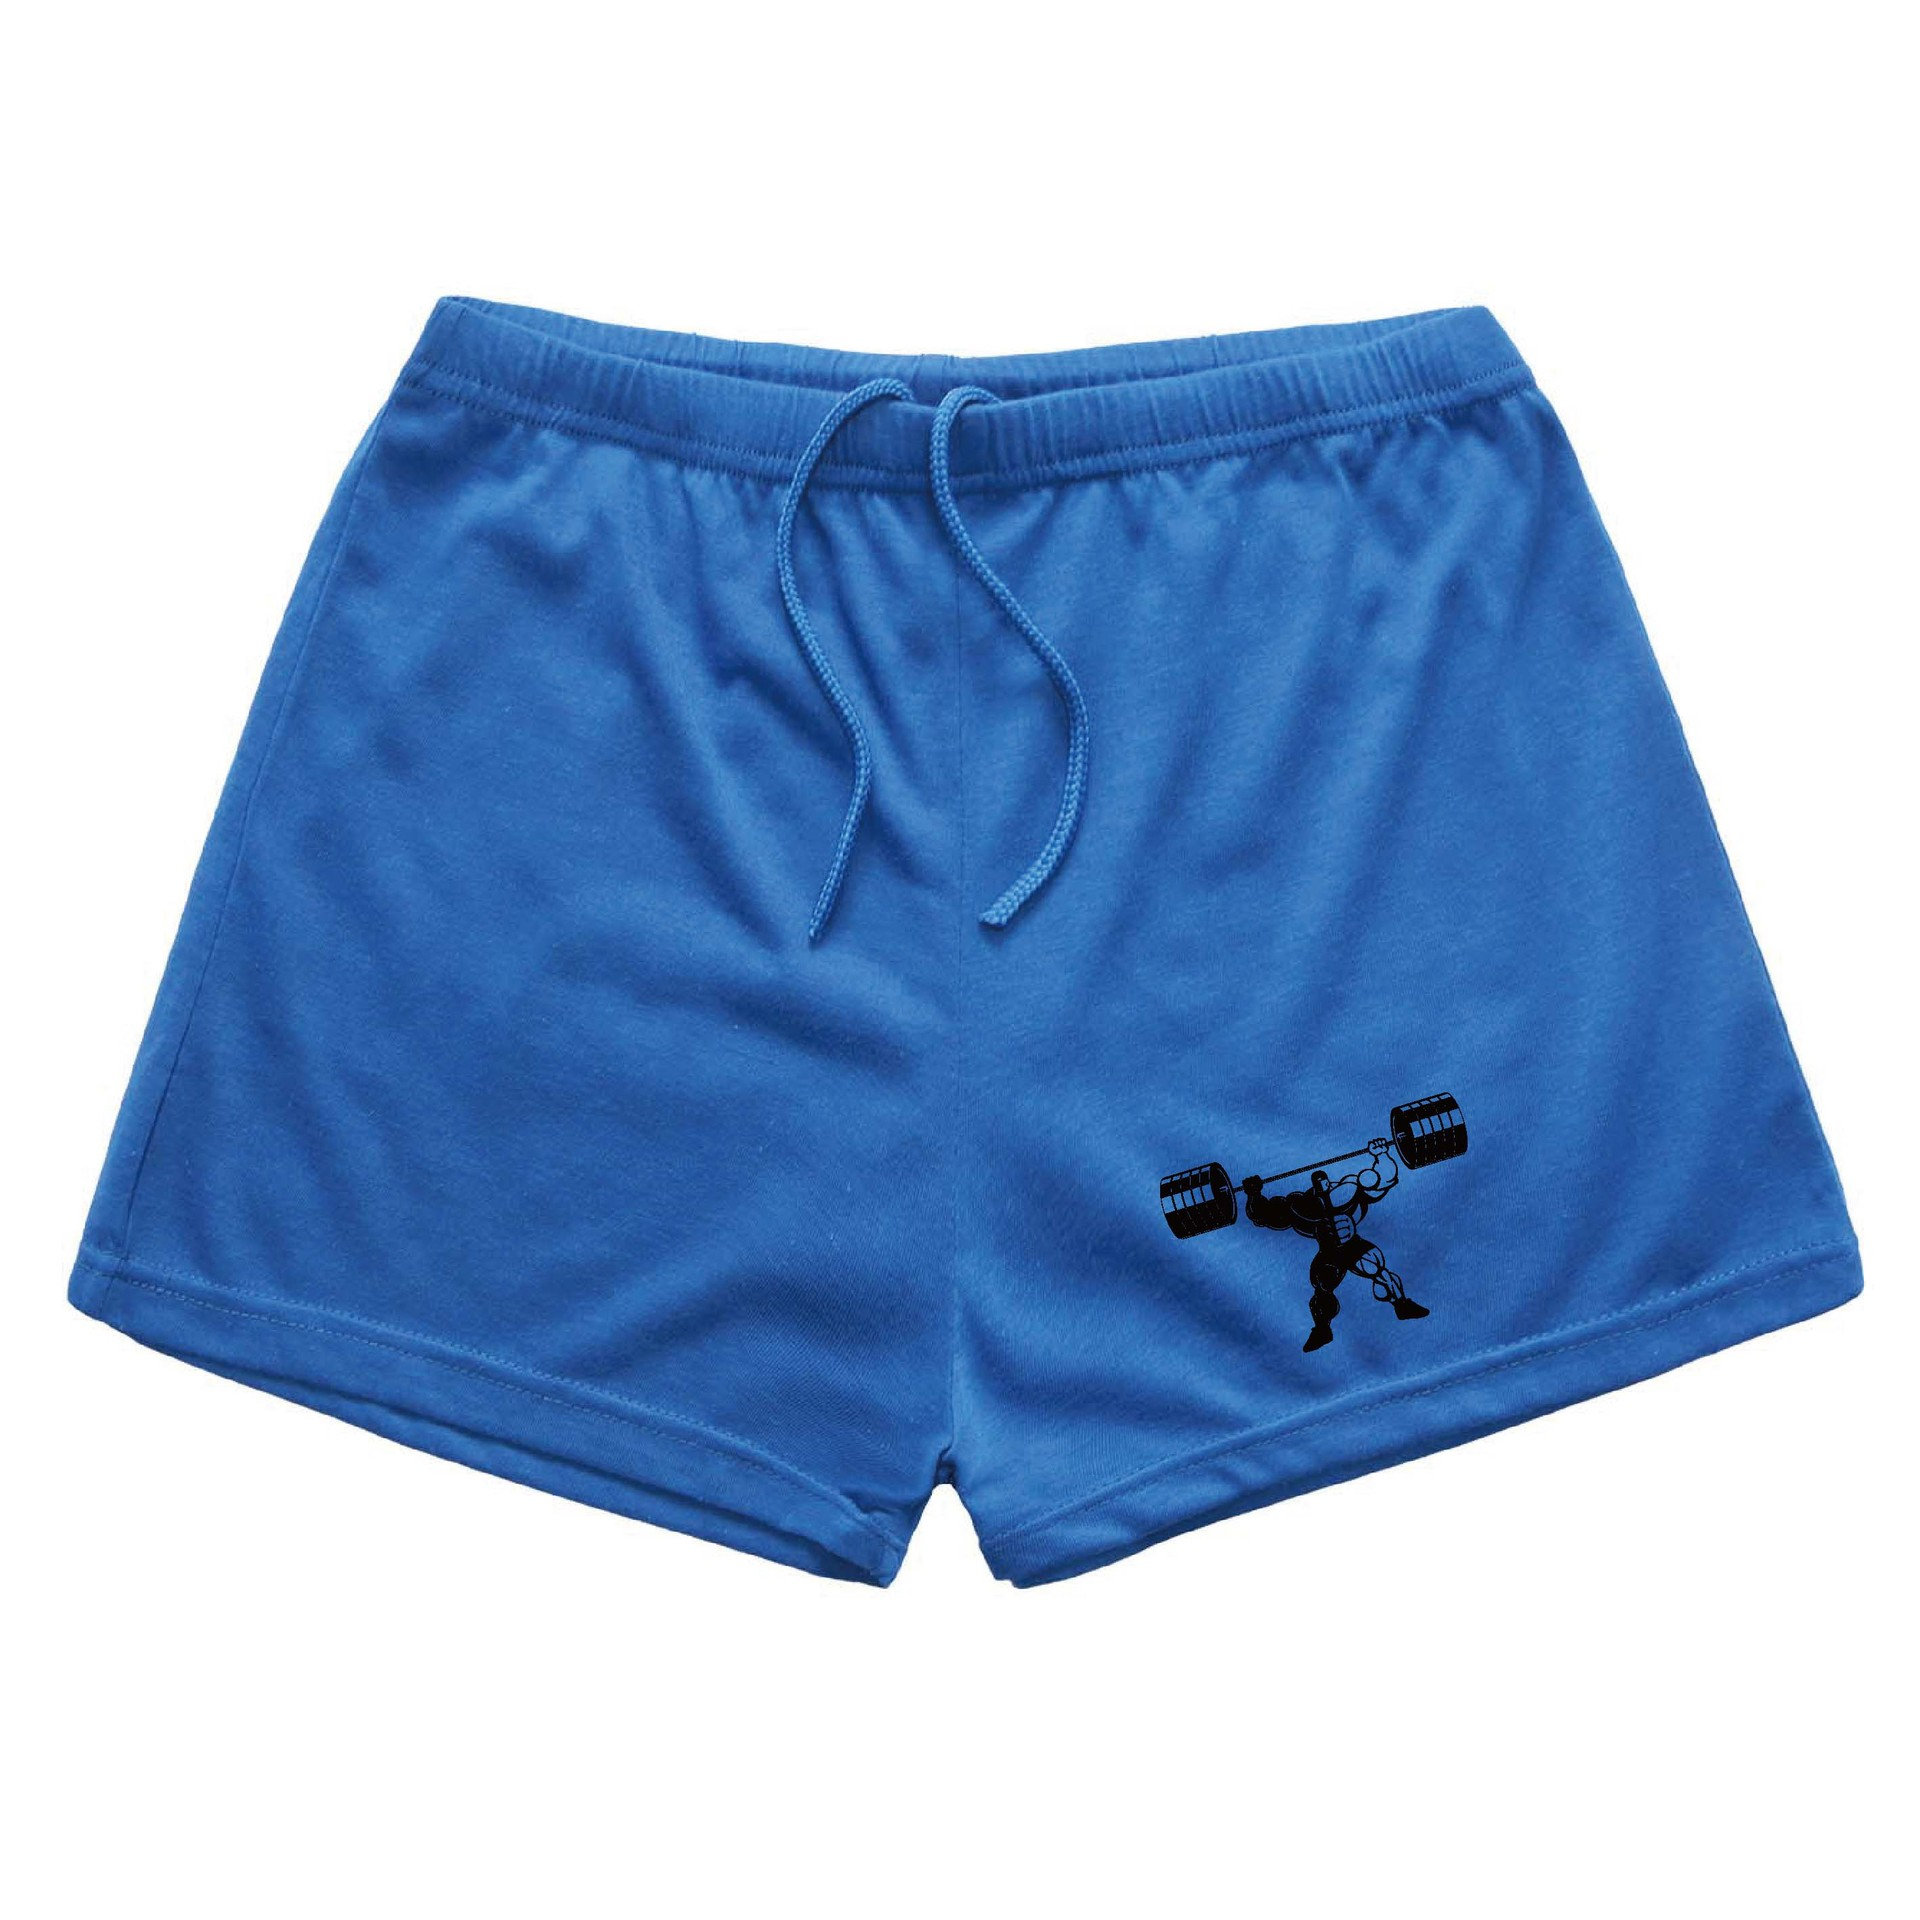 Pants Shorts Sports Quick-Drying Pants 8827 Pants MEN'S Pants Men'S Wear MEN'S Beach Pants 2018 New Products